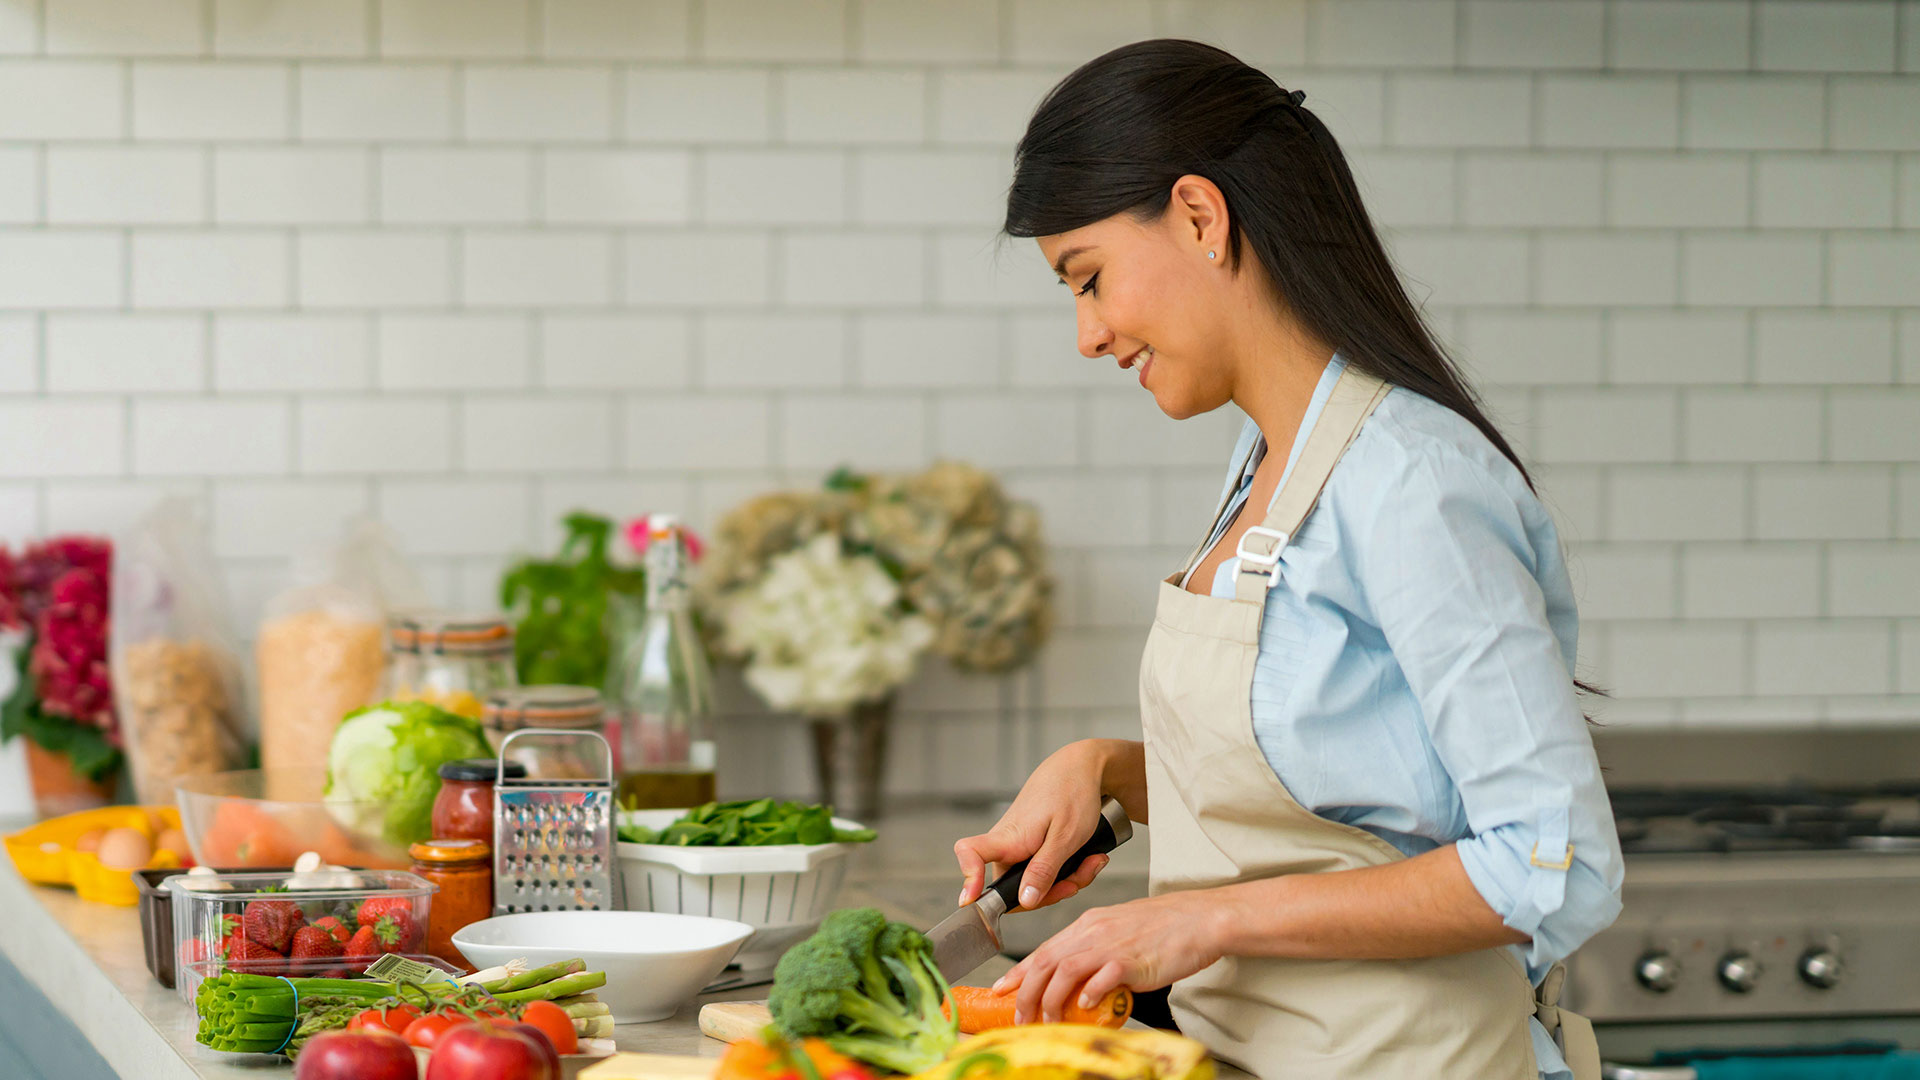 On the Grocery List: A Healthy Diet for Preventing Breast Cancer